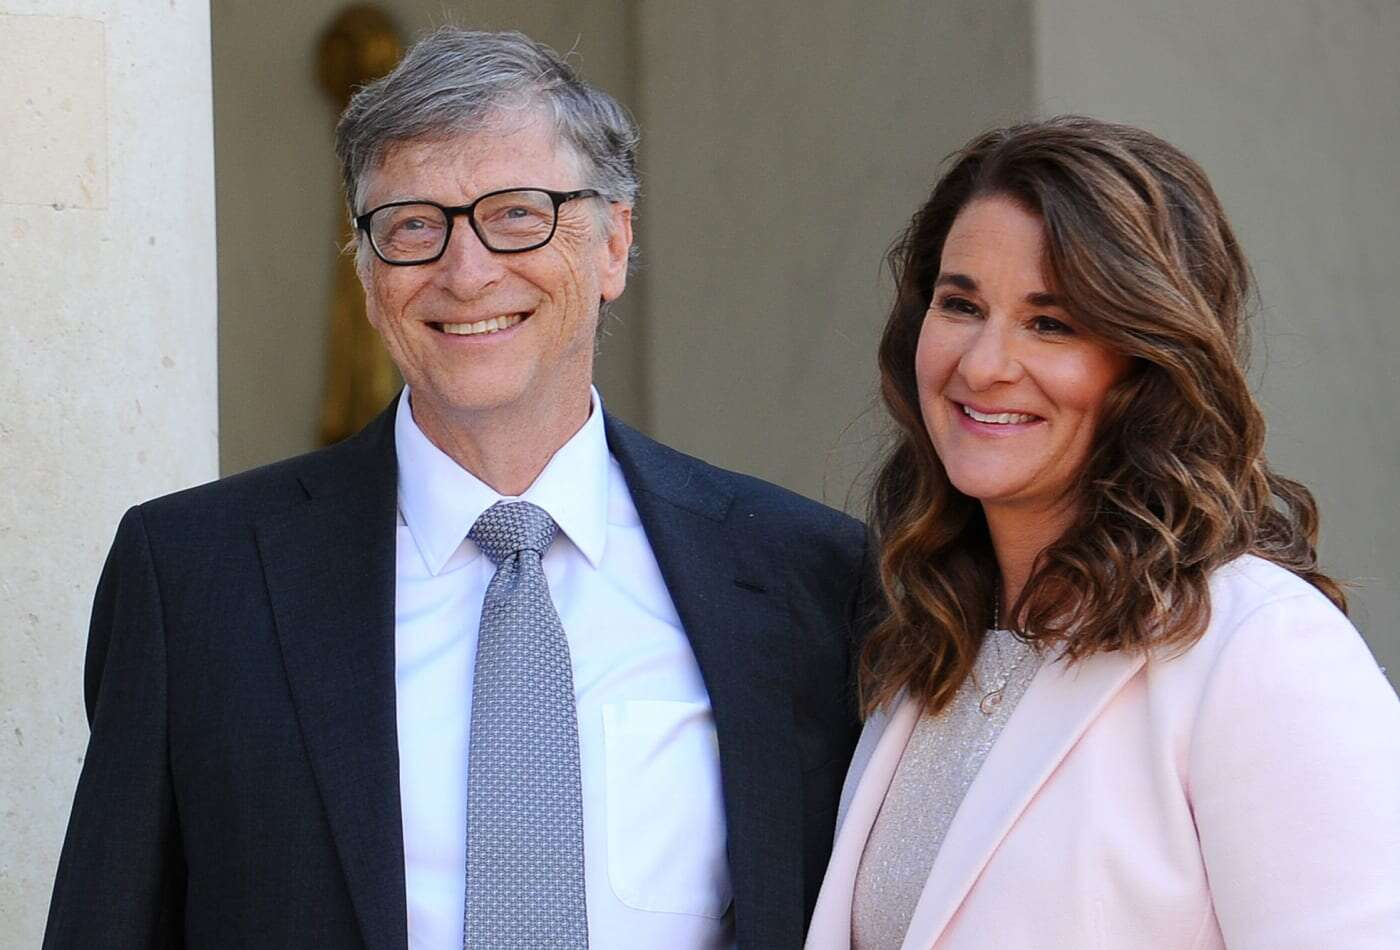 Bill And Melinda Gates Foundation Donate $100 Million To Coronavirus Vaccine Research And Treatment